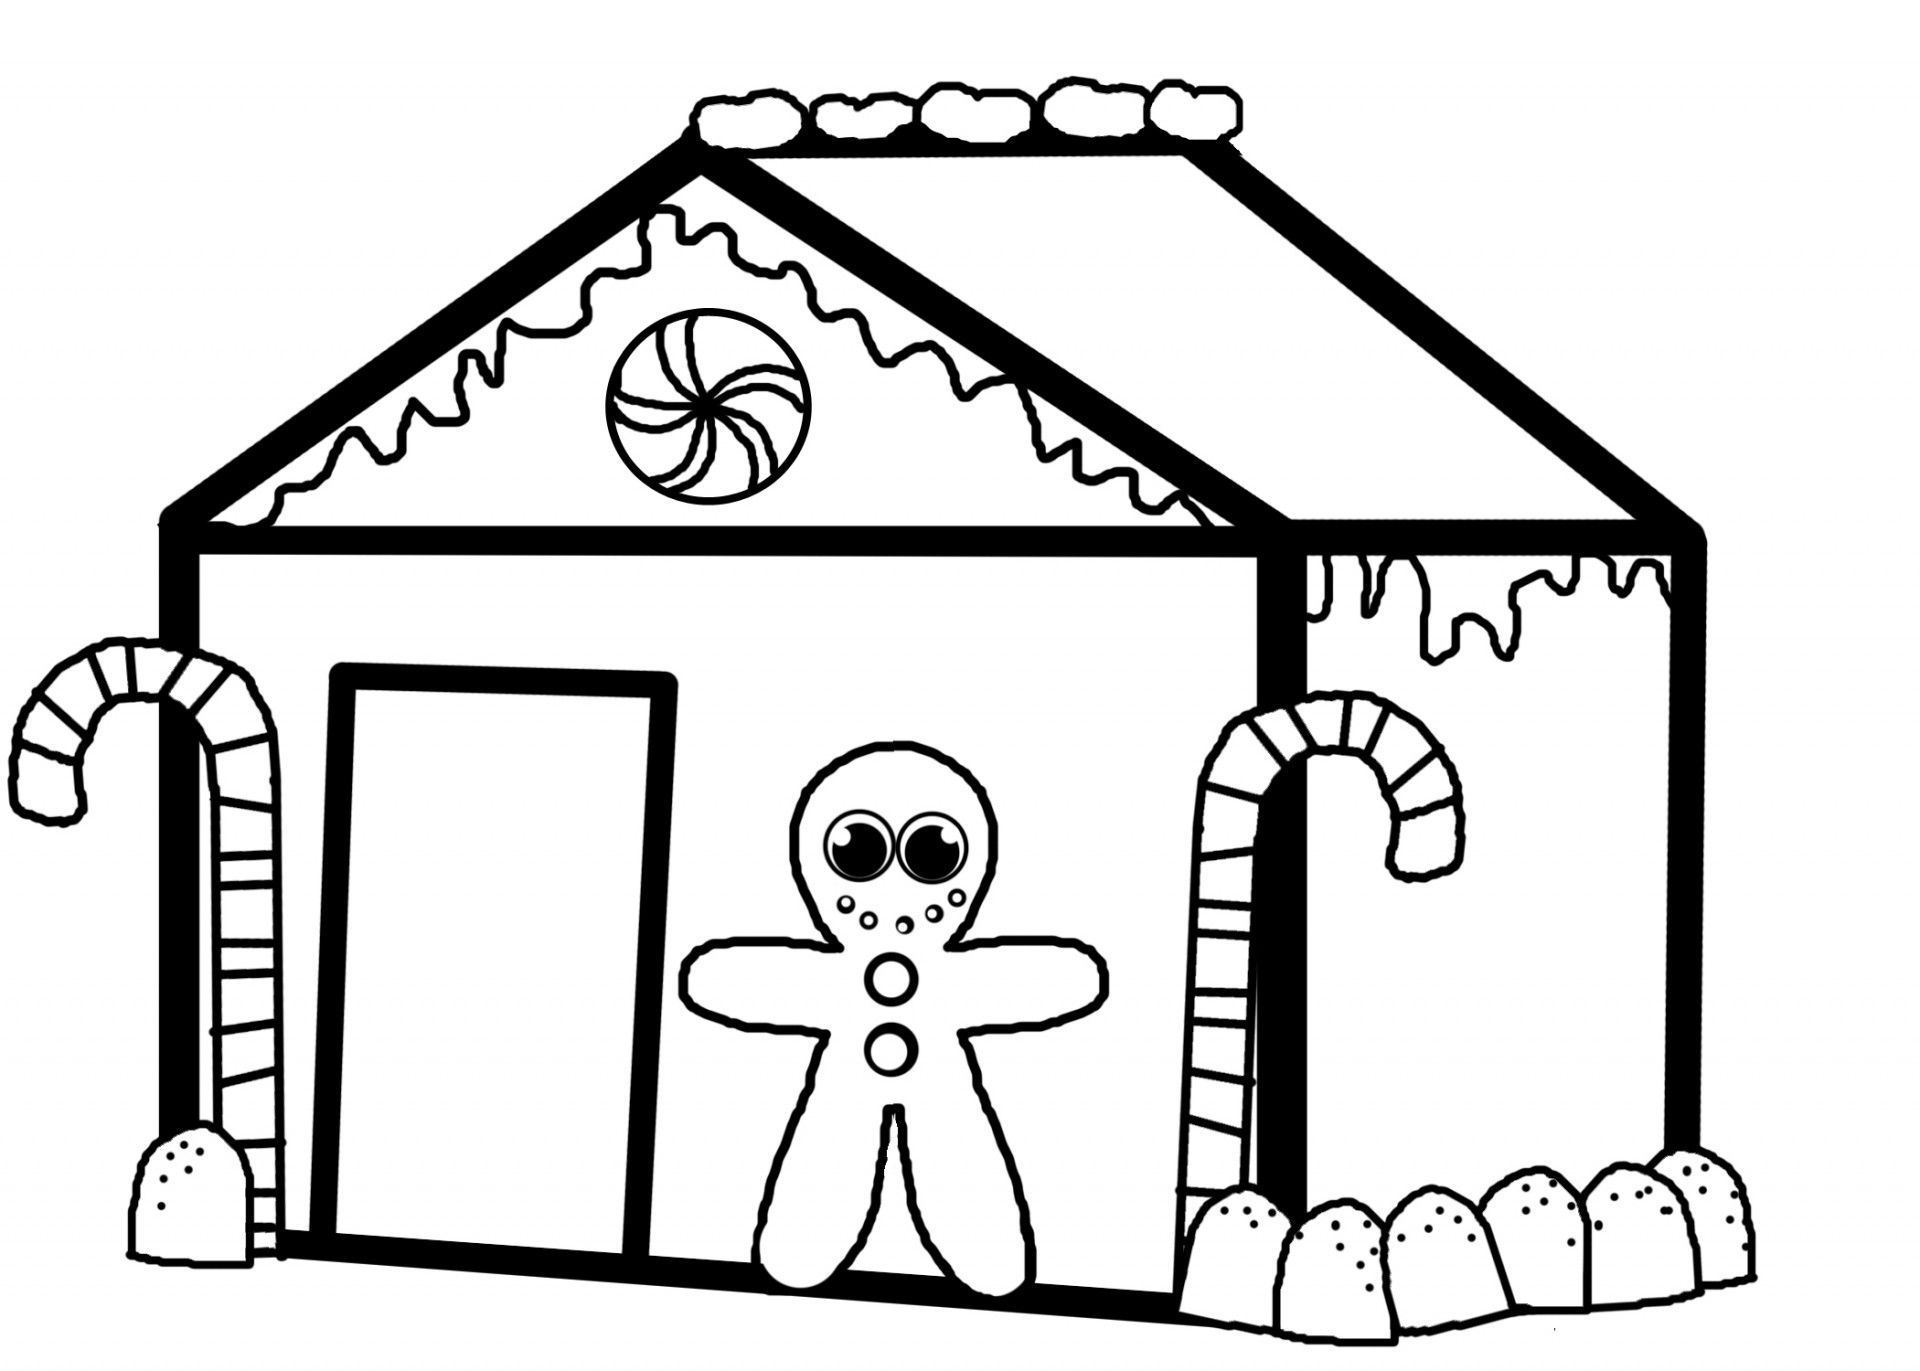 gingerbread house coloring page gingerbread house coloring pages to download and print for page coloring gingerbread house